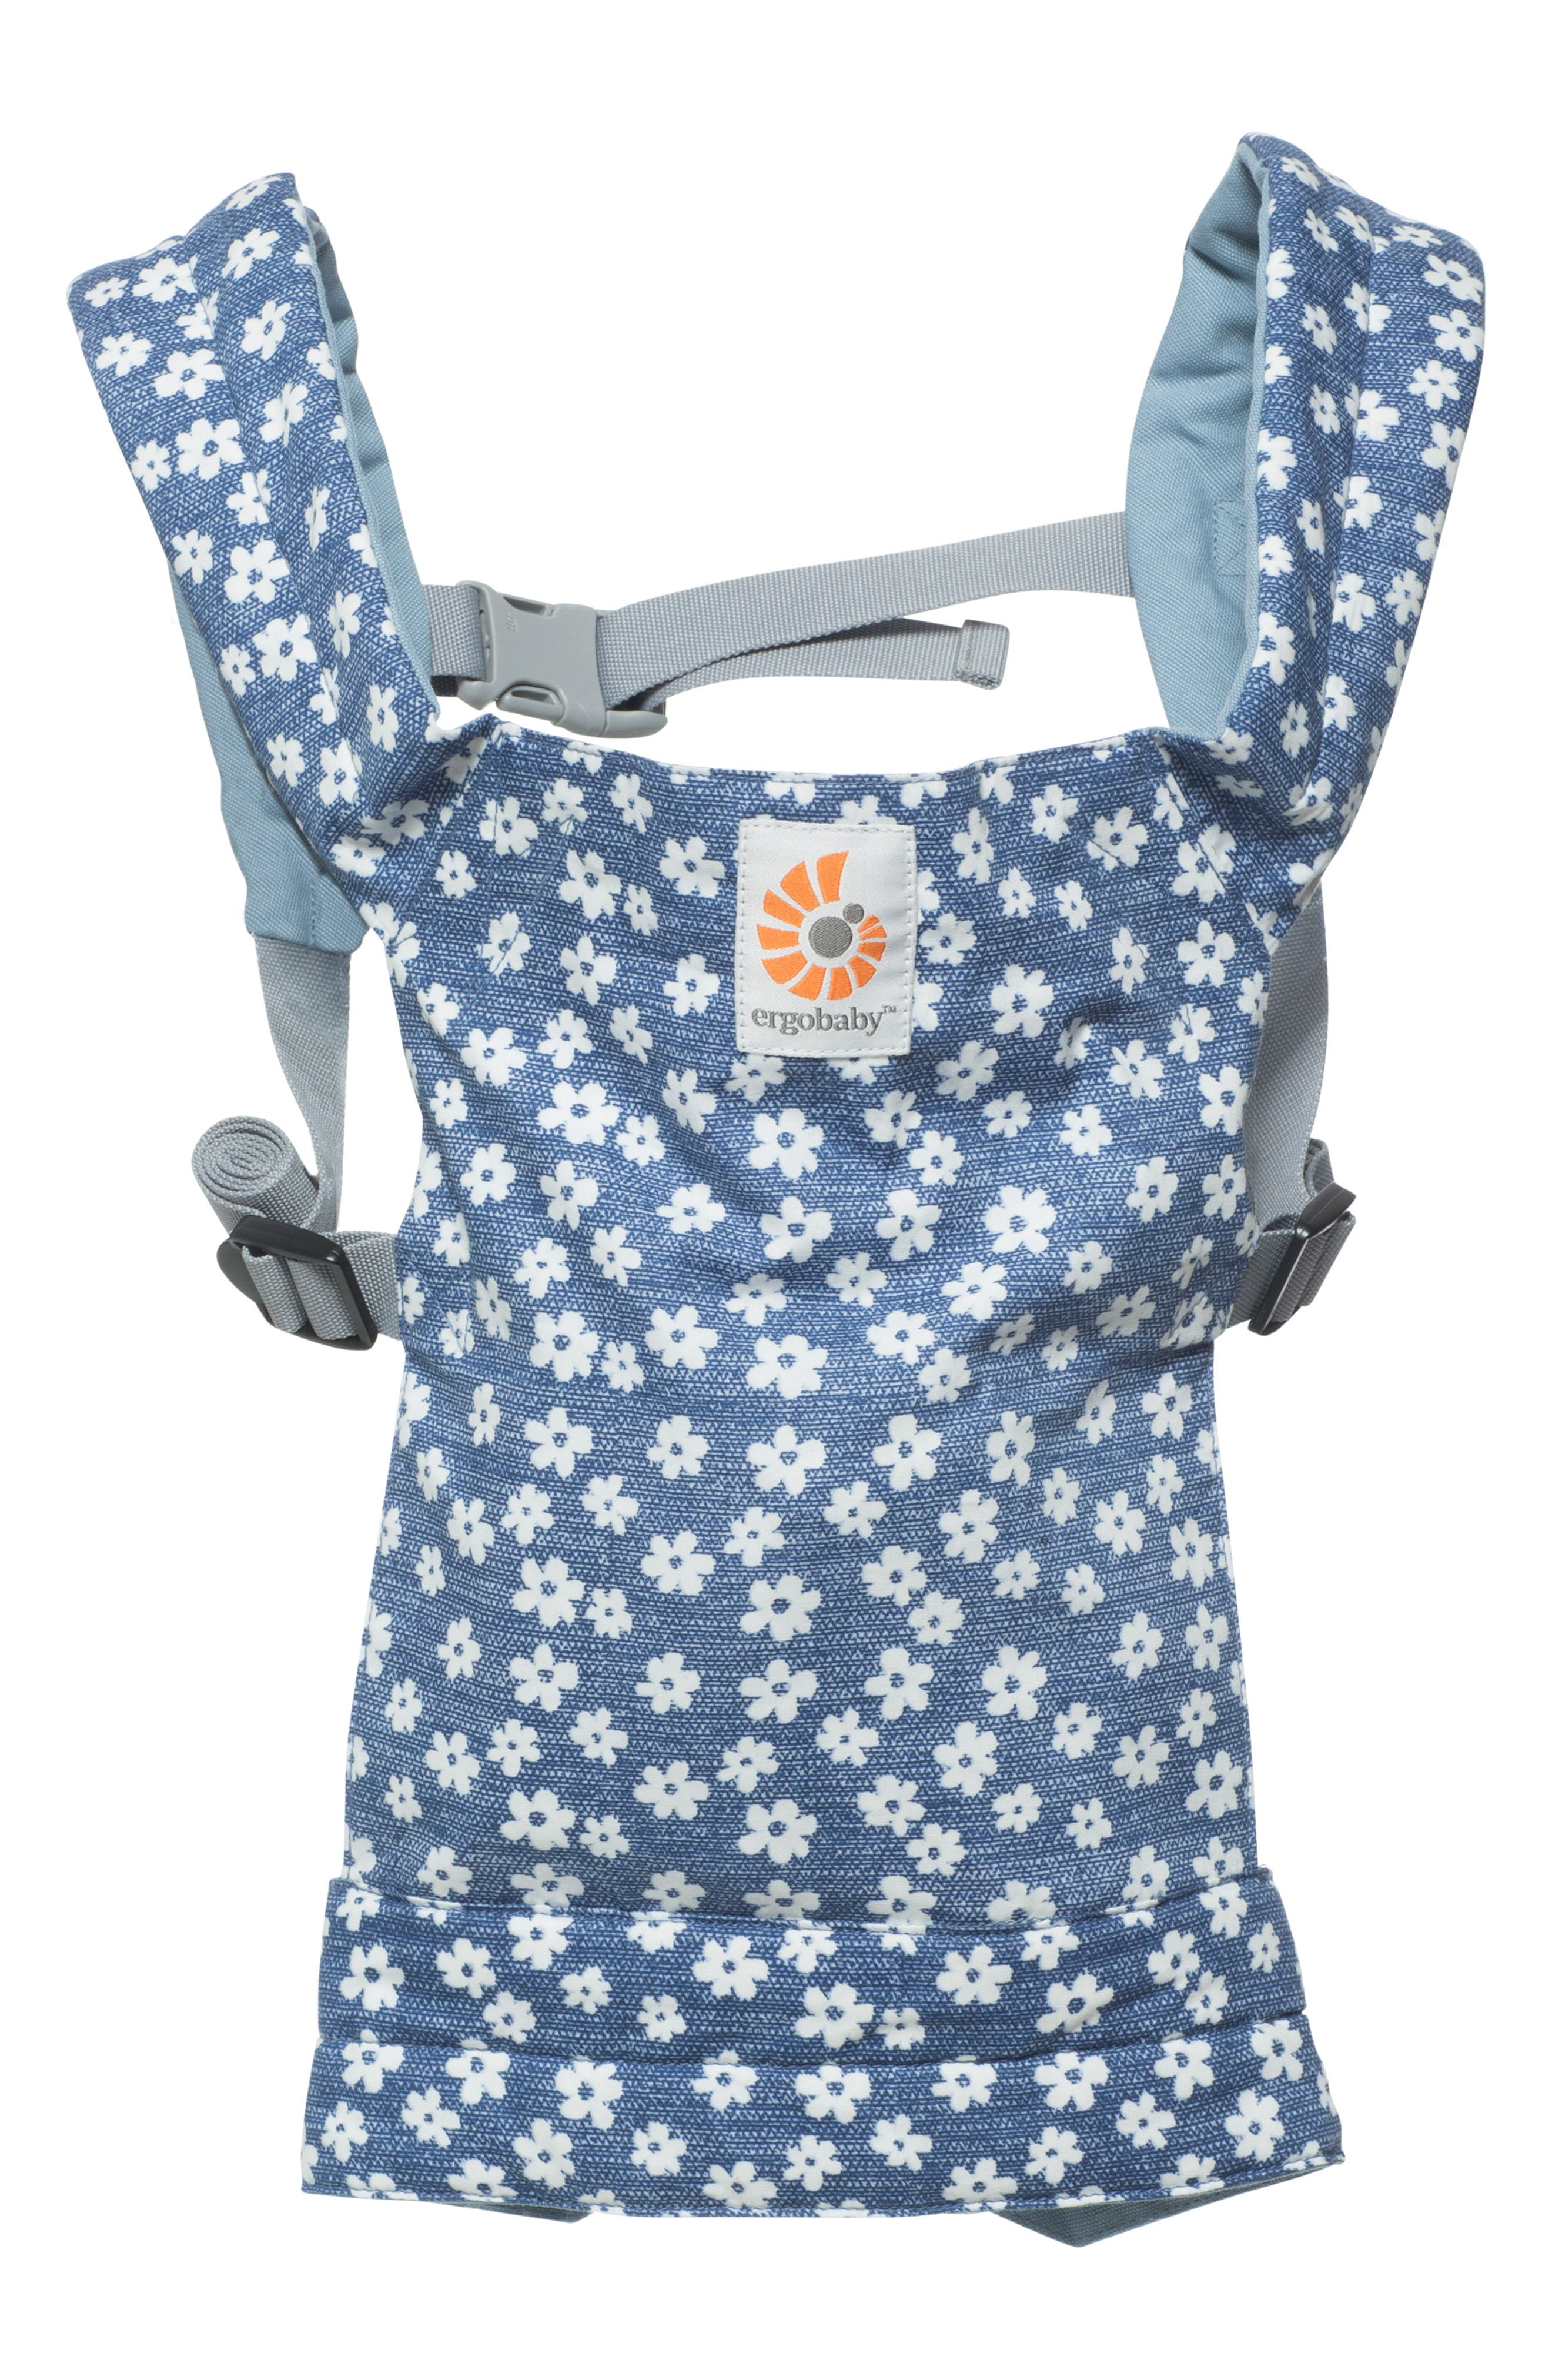 x Hello Kitty<sup>®</sup> Doll Carrier,                         Main,                         color, 405